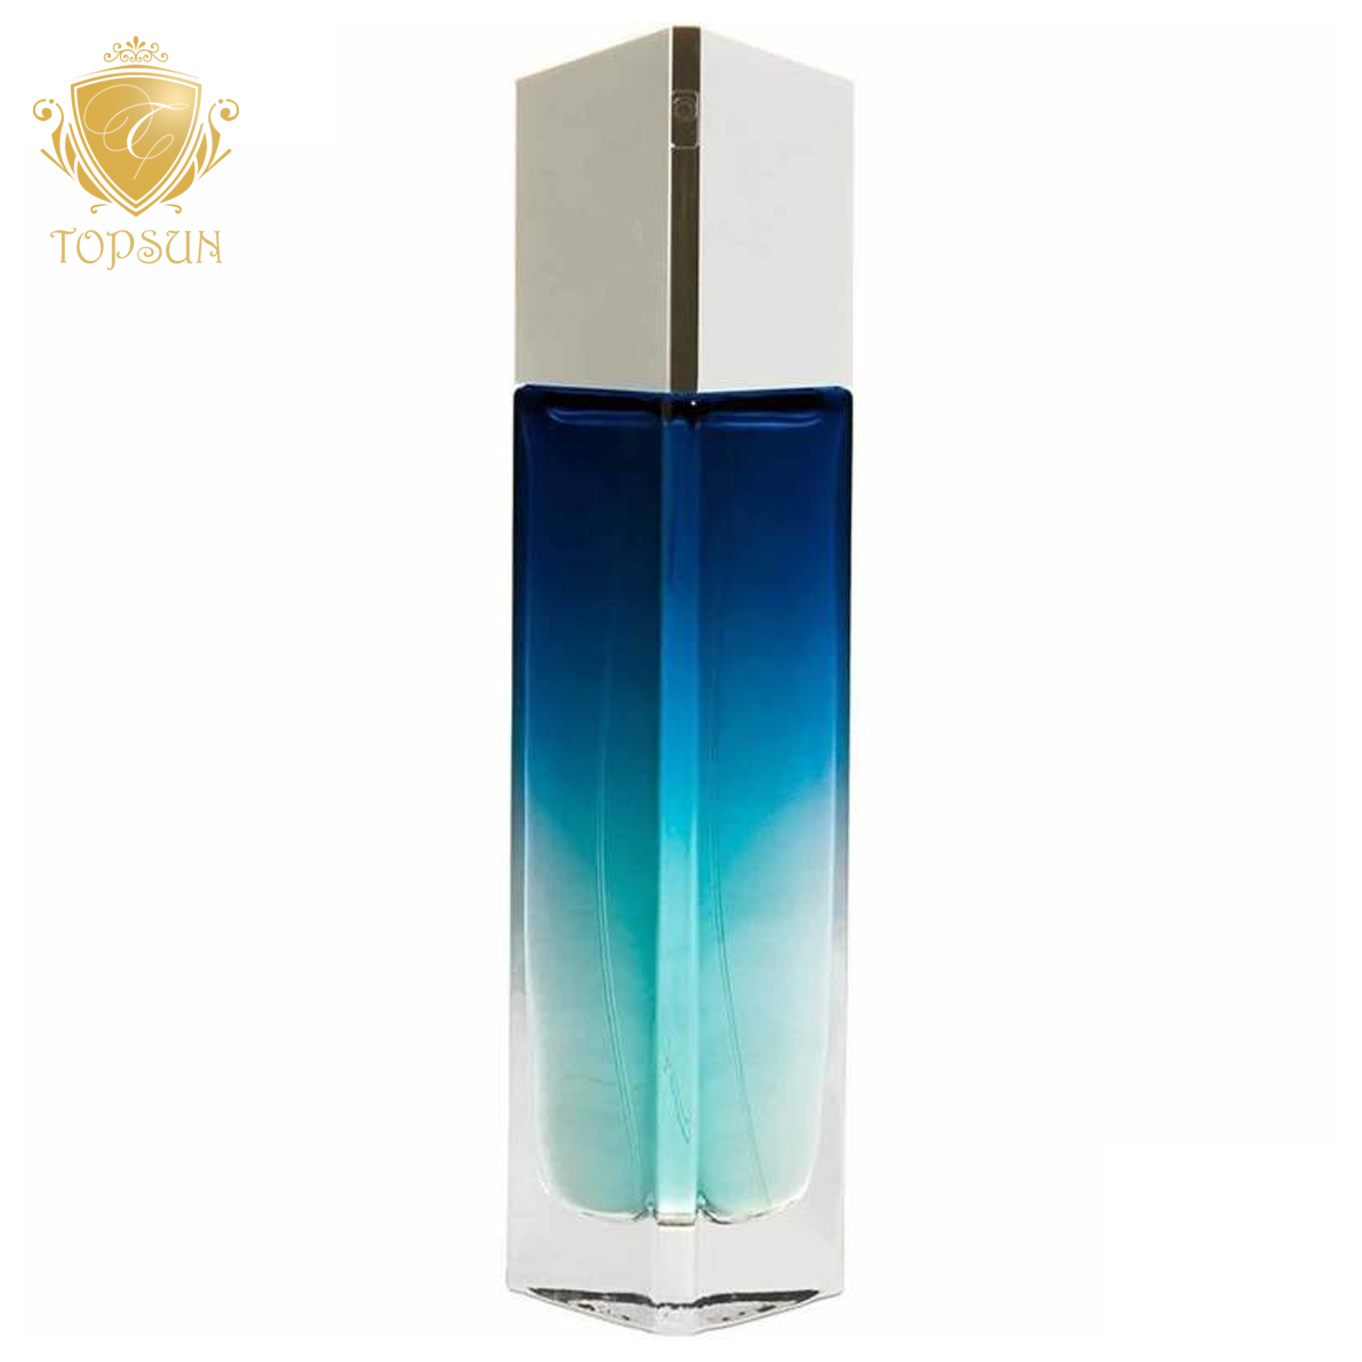 عطر ادوتویلت جیوانچی با کد VERY IRRESISTIBLE FRESH ATTITUDE SORBET FOR MEN EDT ( VERY IRRESISTIBLE FRESH ATTITUDE SORBET FOR MEN EDT )